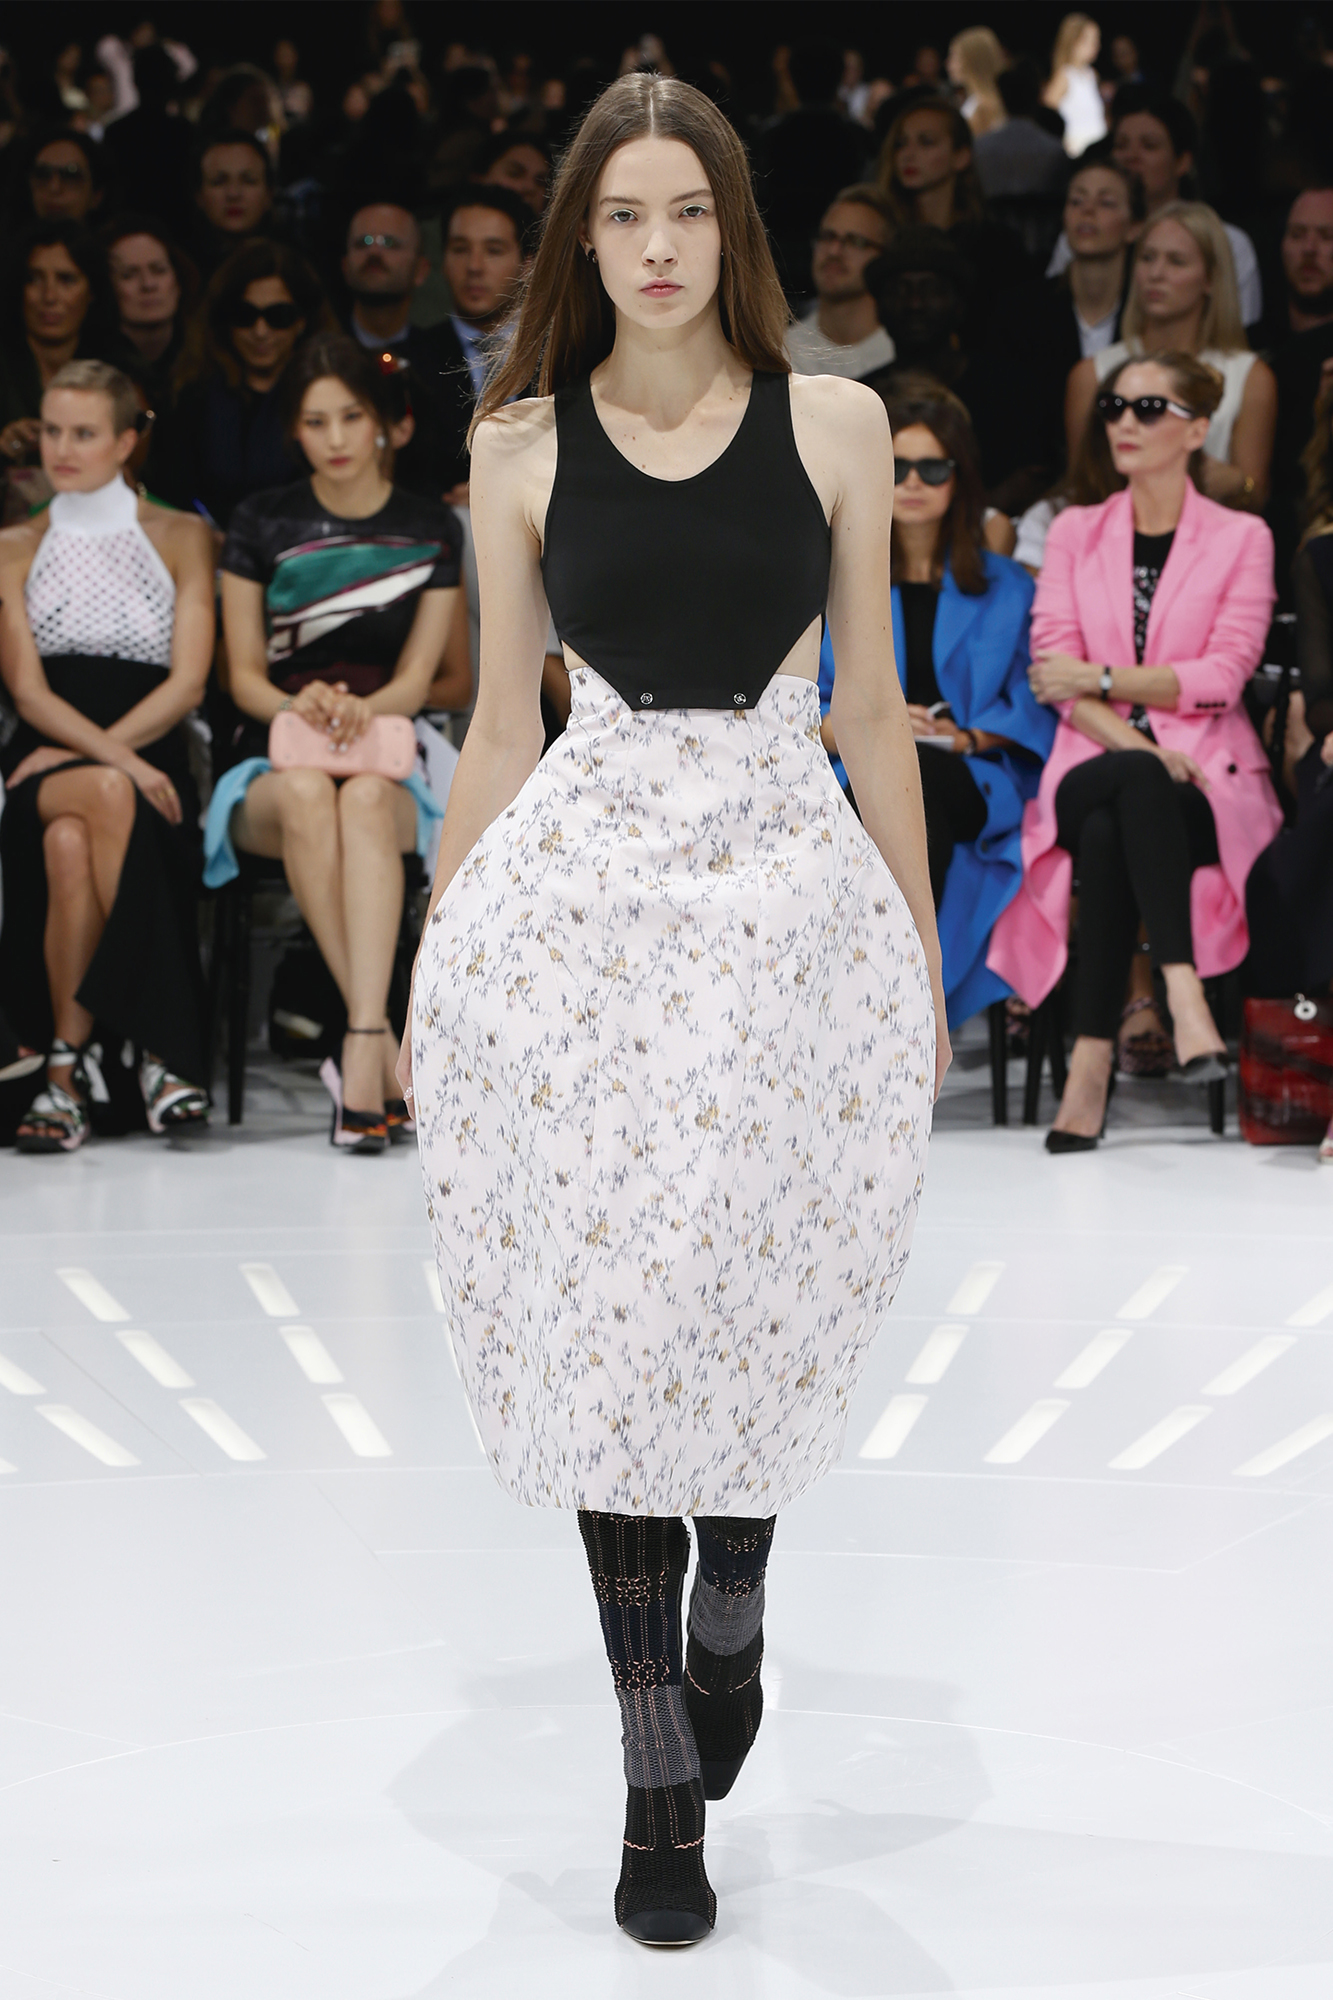 New Western Fashion Christian Dior Ready To Wear Dresses Spring Summer Collection 2015  (16)